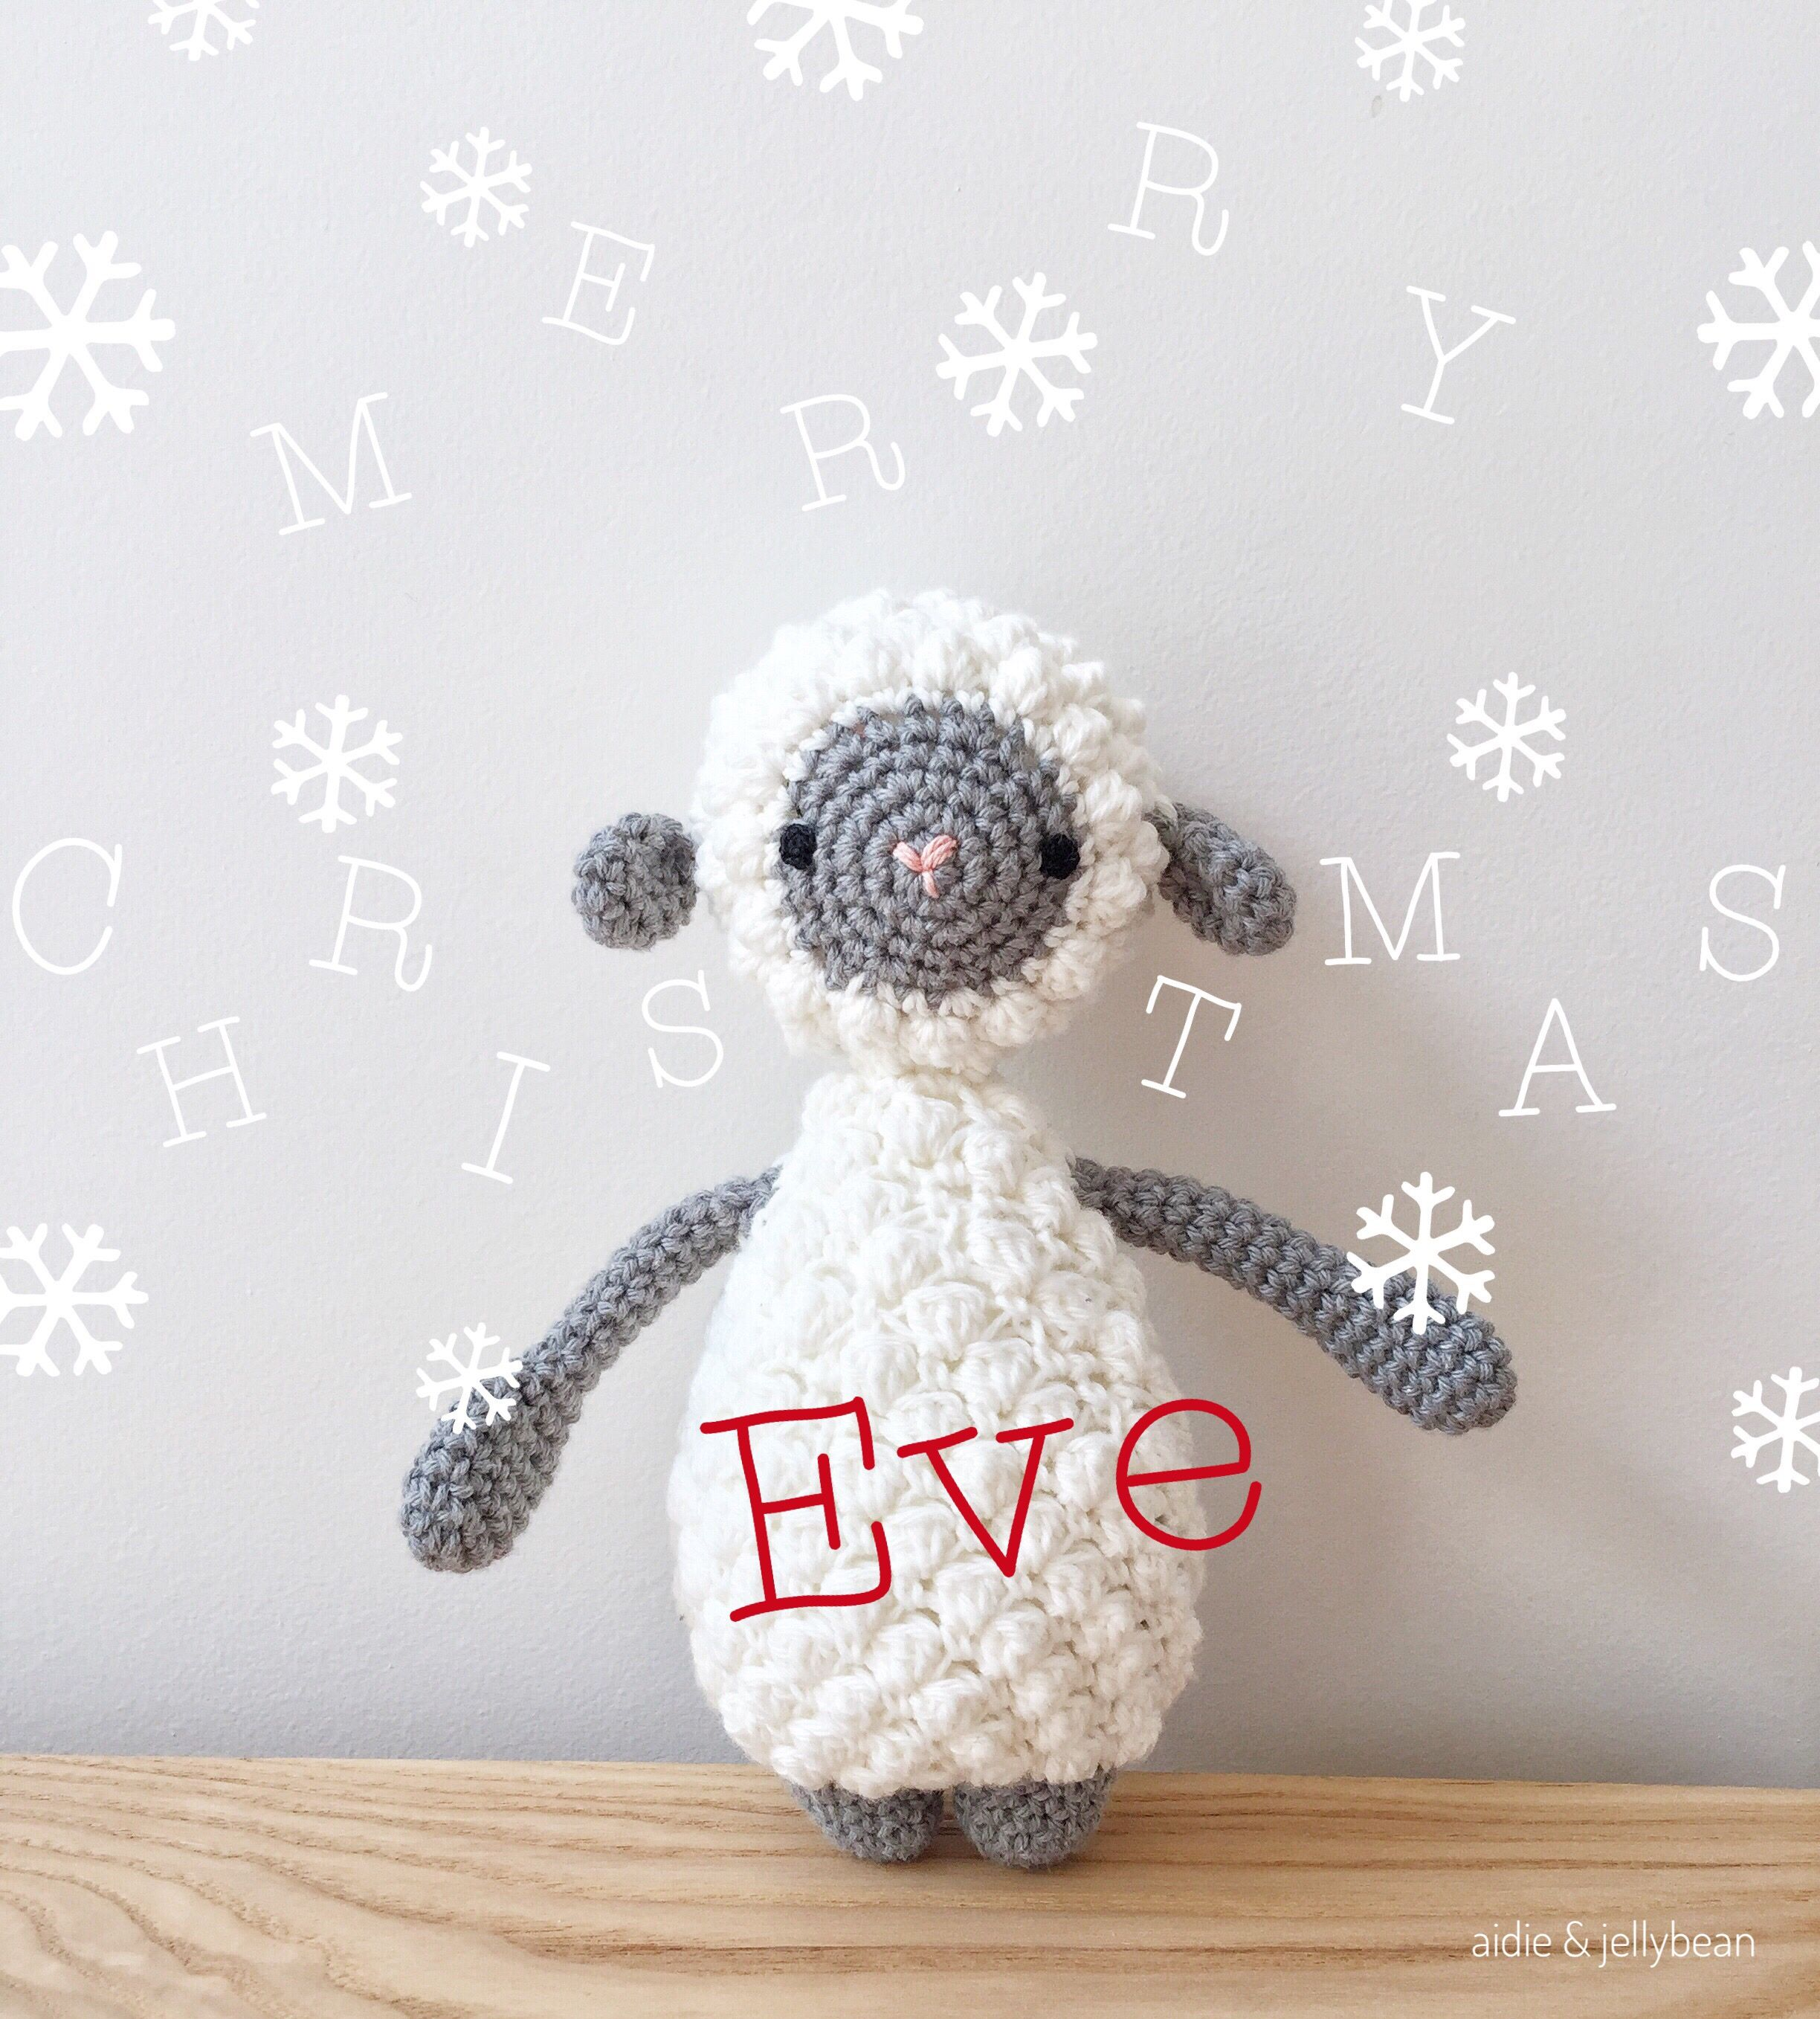 Happy Christmas Eve❄wishing everyone a safe and happy holiday season🎄#amigurumi #sheep #handmade #aidieandjellybean #almostchristmas #christmaseve